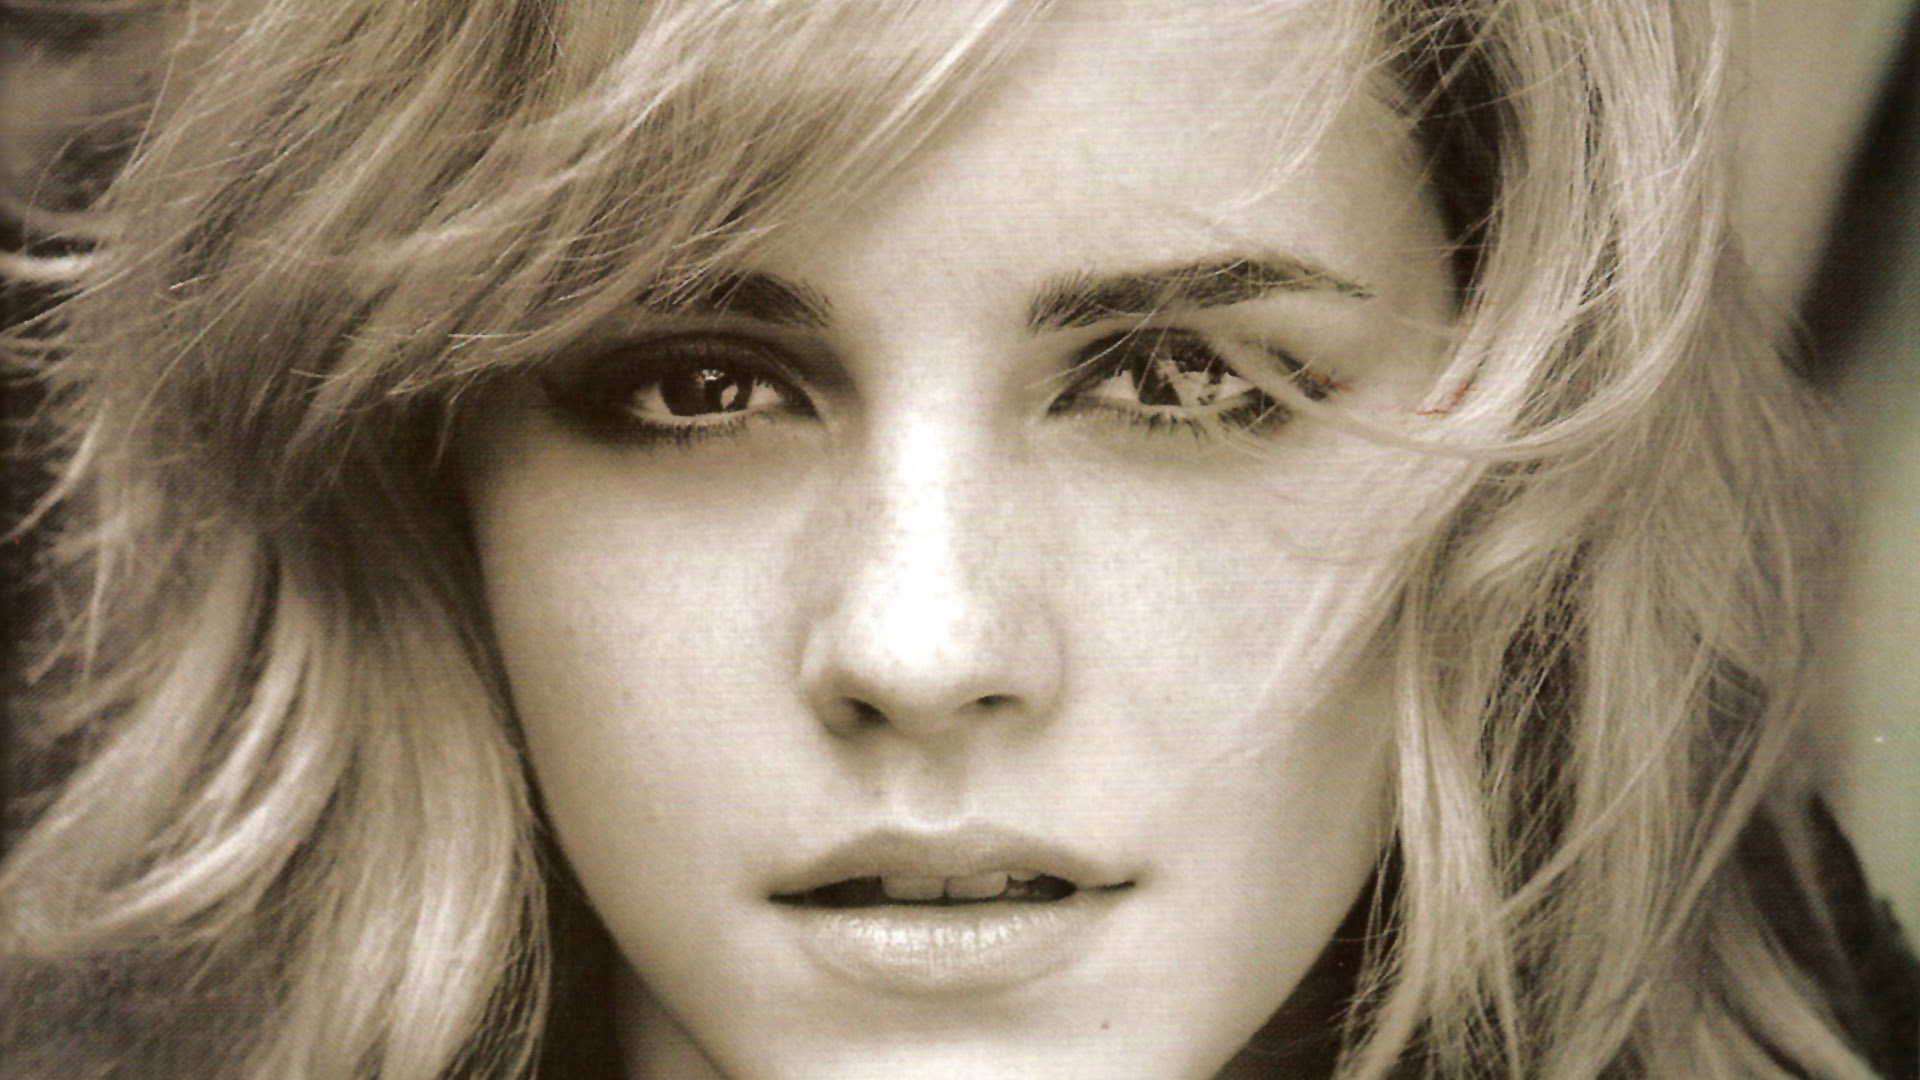 Emma watson full hd wallpaper and background image - Emma watson wallpaper free download ...